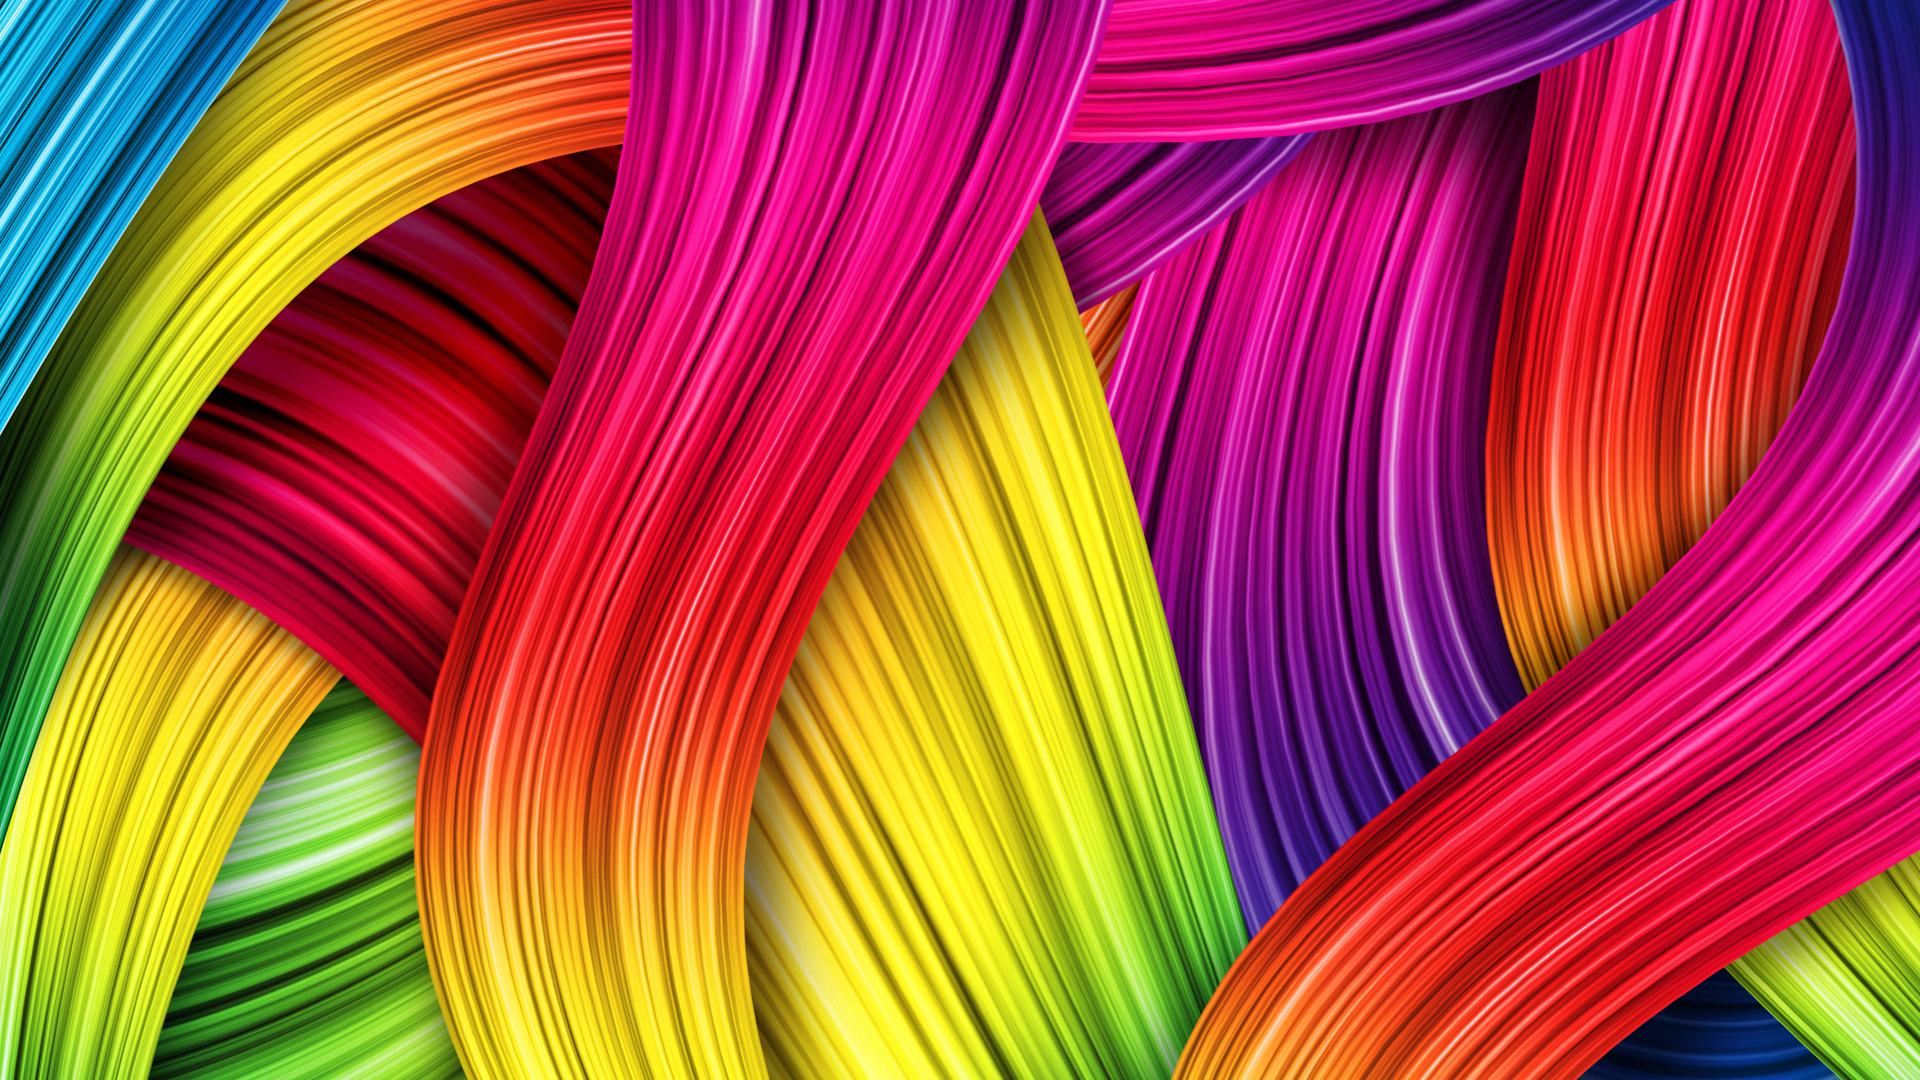 Animated Colorful Thread Wallpaper With Resolutions 1920×1080